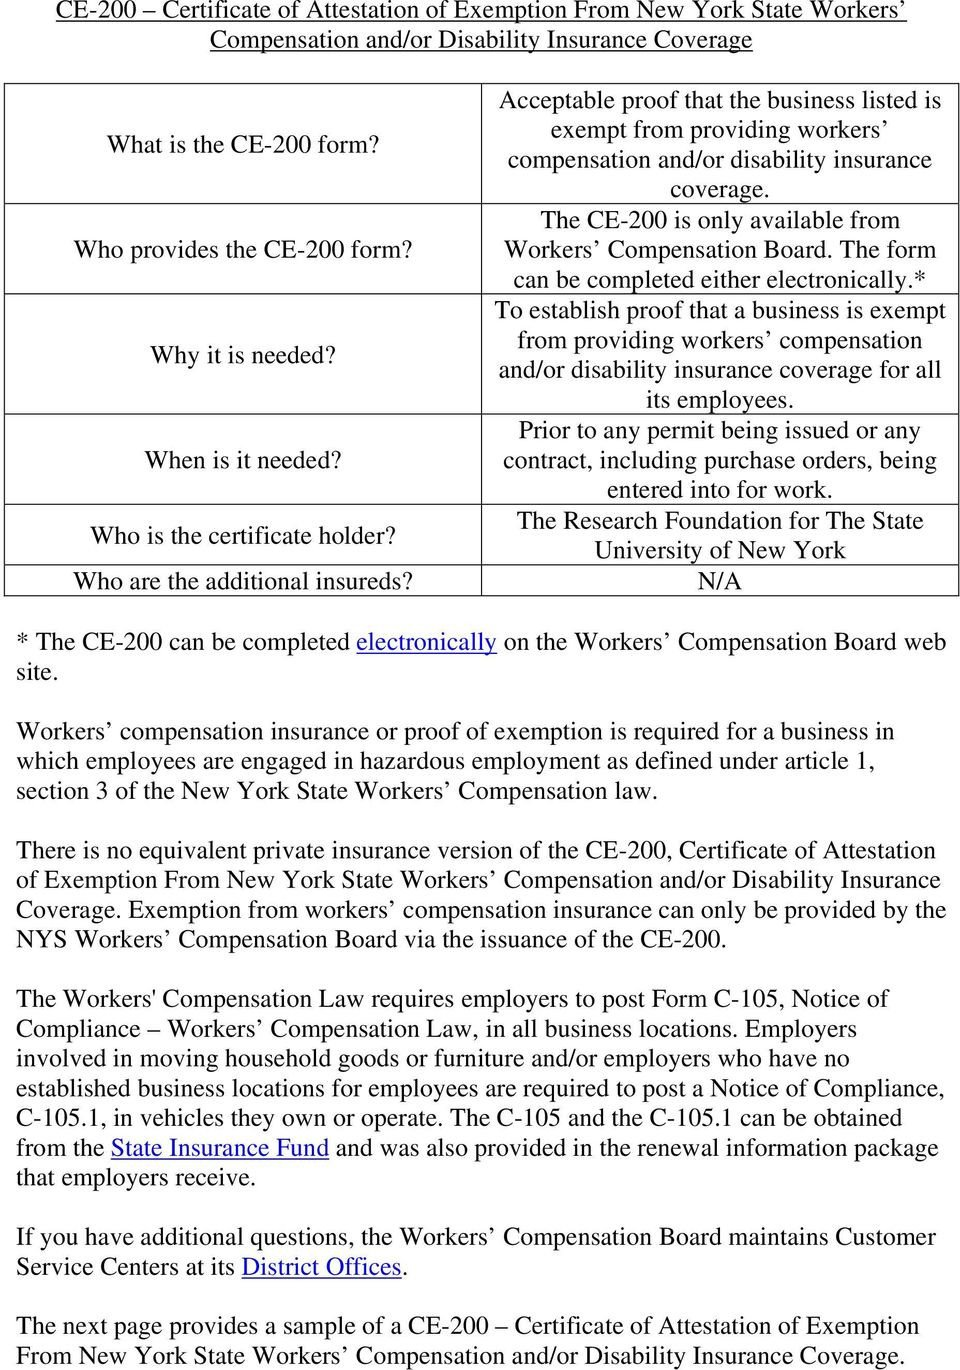 Workers Comp Exemption form Michigan Arizona Workers Pensation Insurance Waiver form Diy